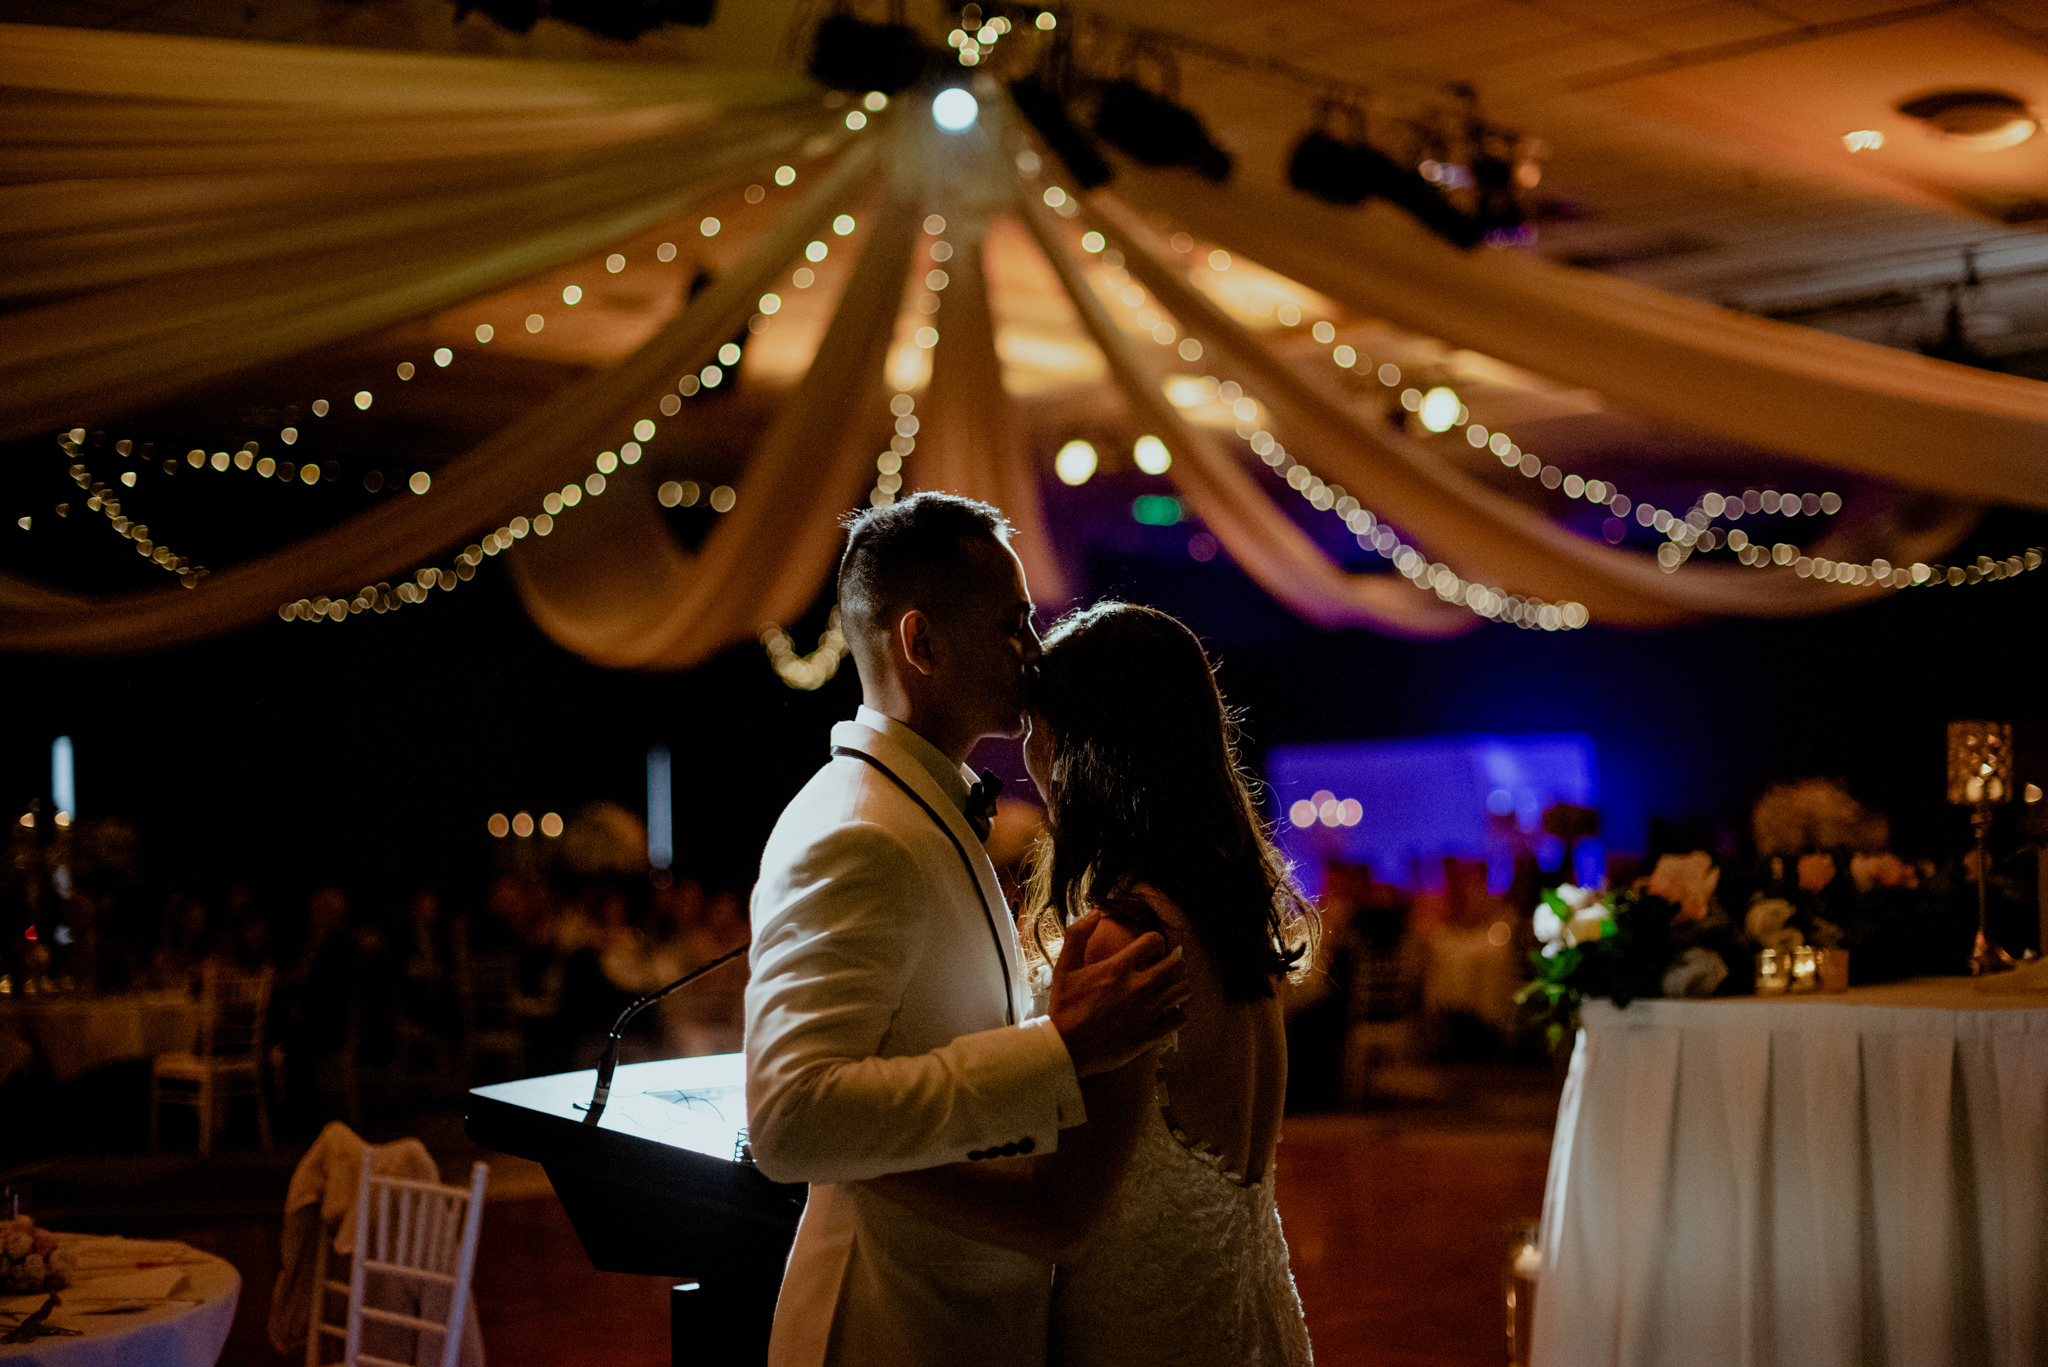 A groom kisses his bride's forehead in front of a spotlight at their reception